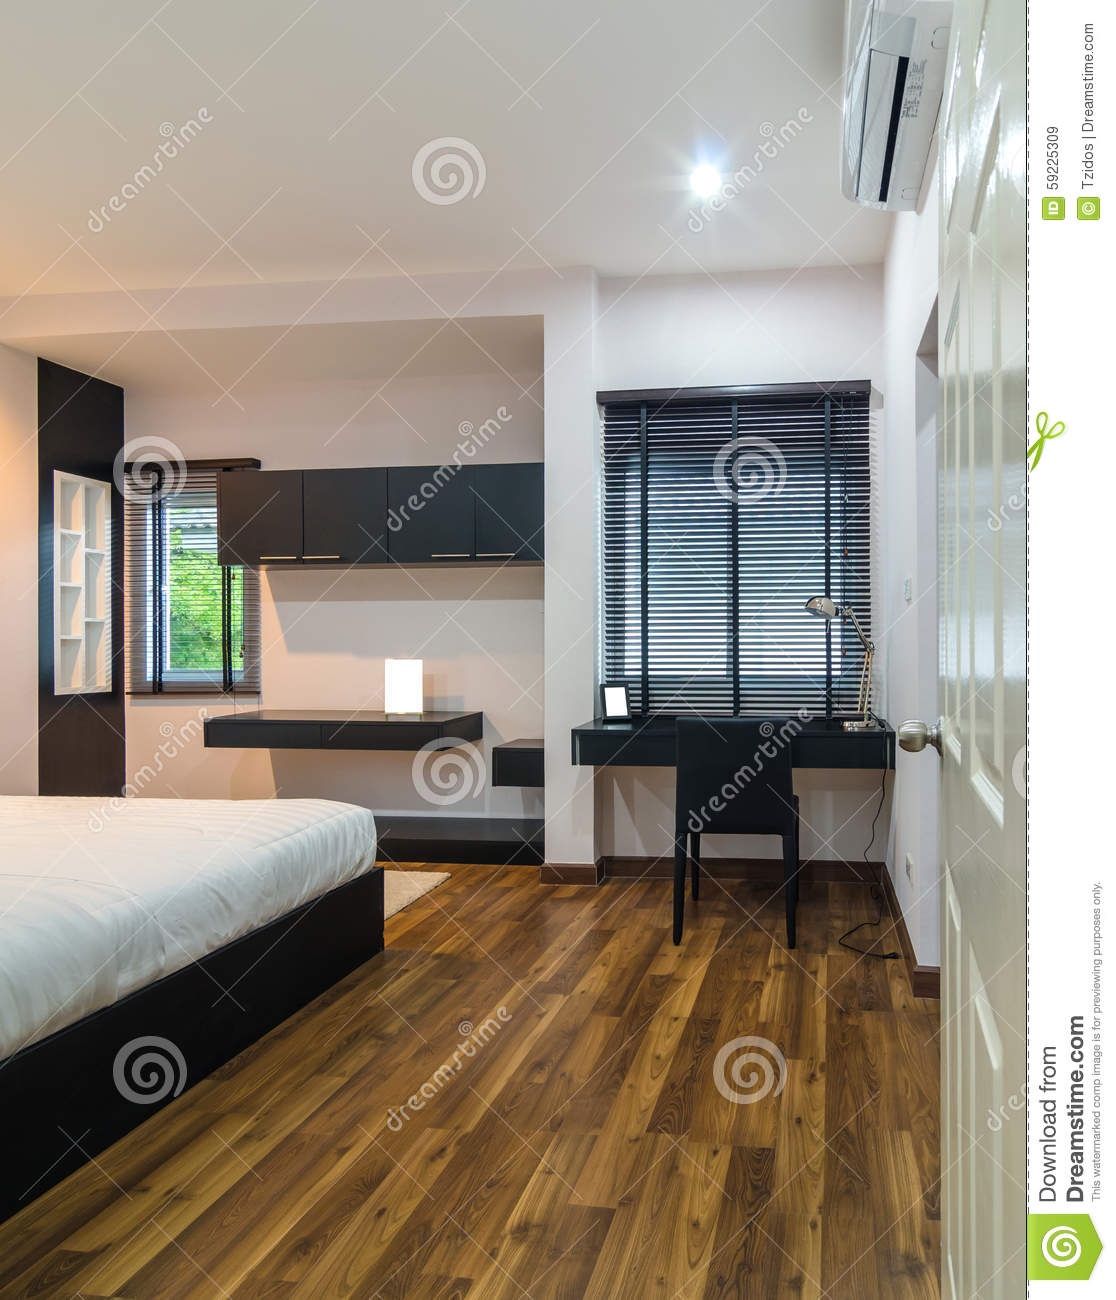 Royalty Free Stock Photo Download Interior Bedroom Business Concept